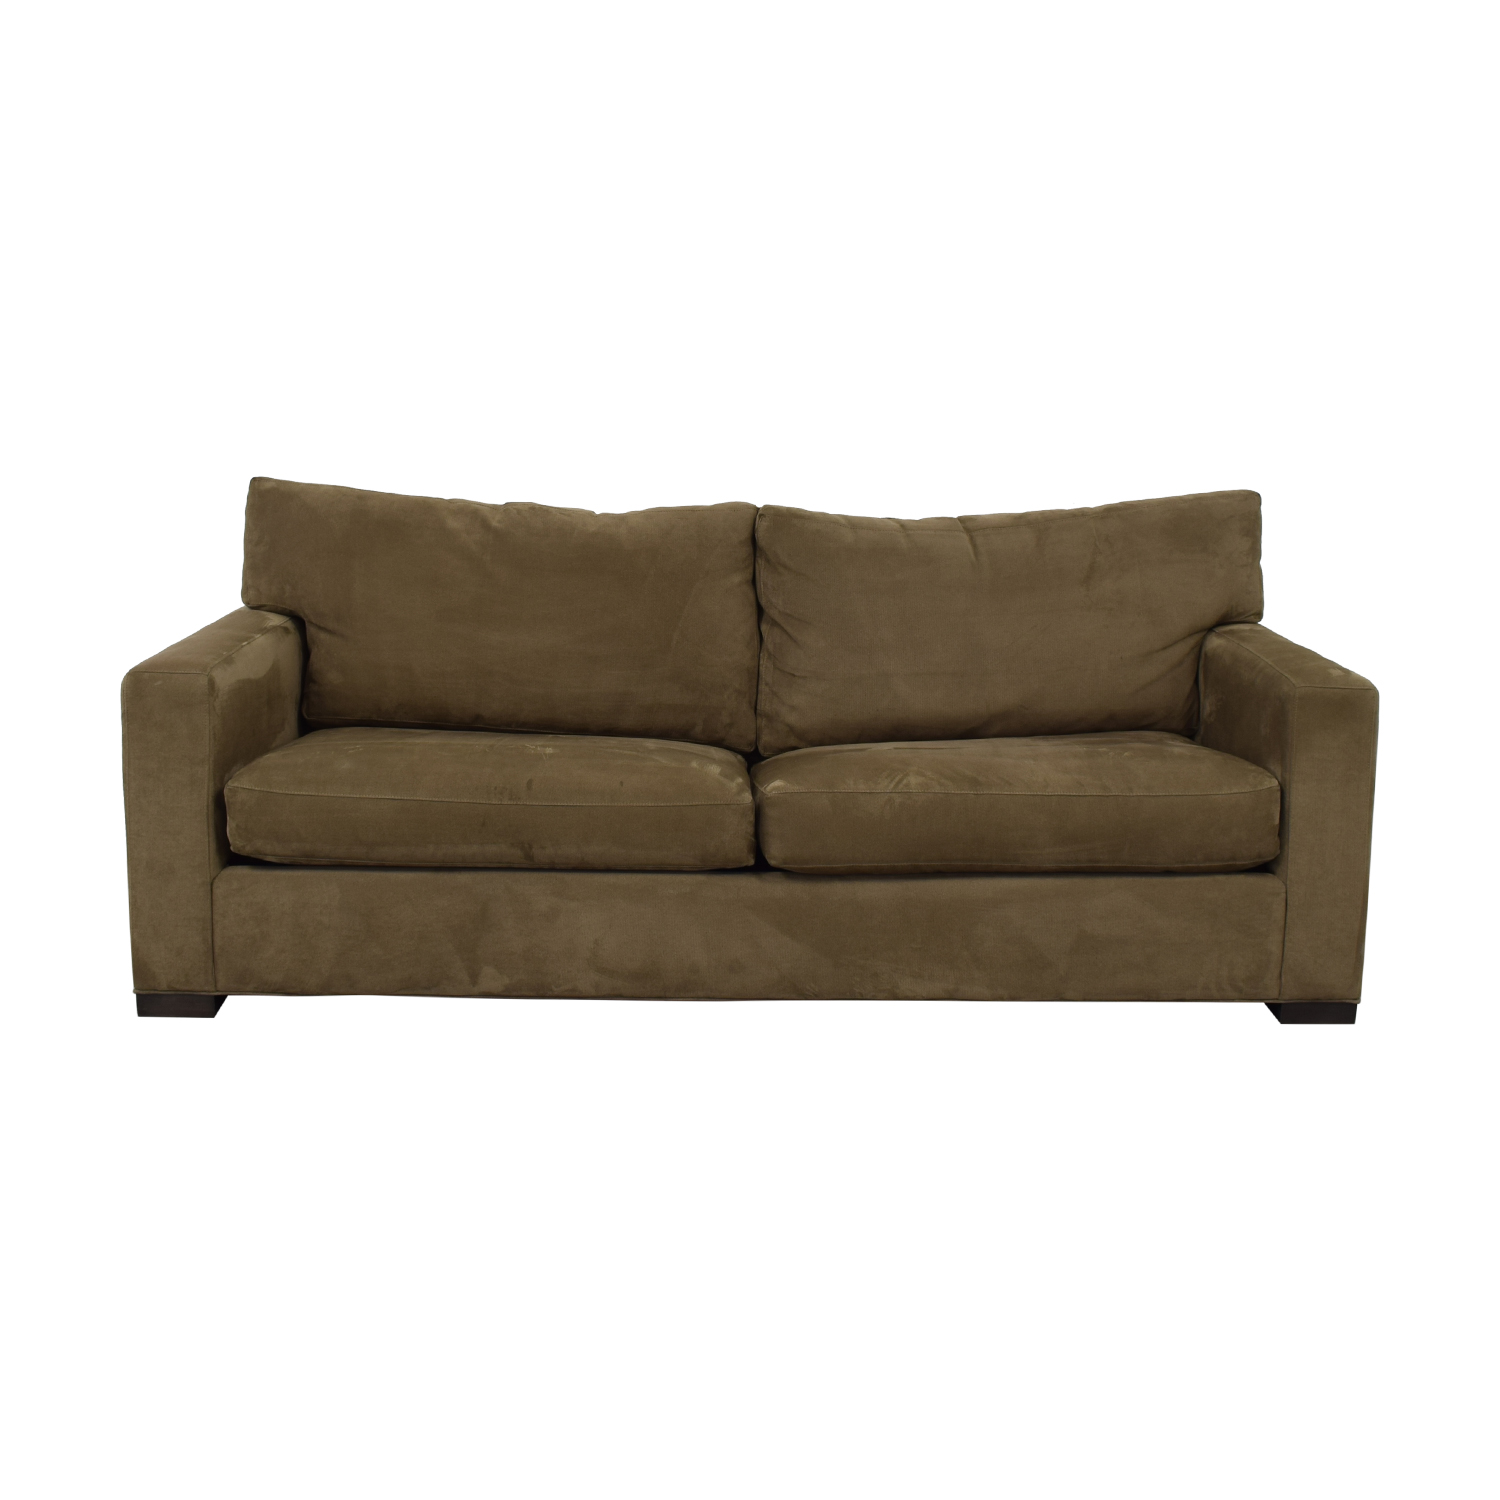 Crate & Barrel Crate & Barrel Axis II Queen Sleeper Sofa brown